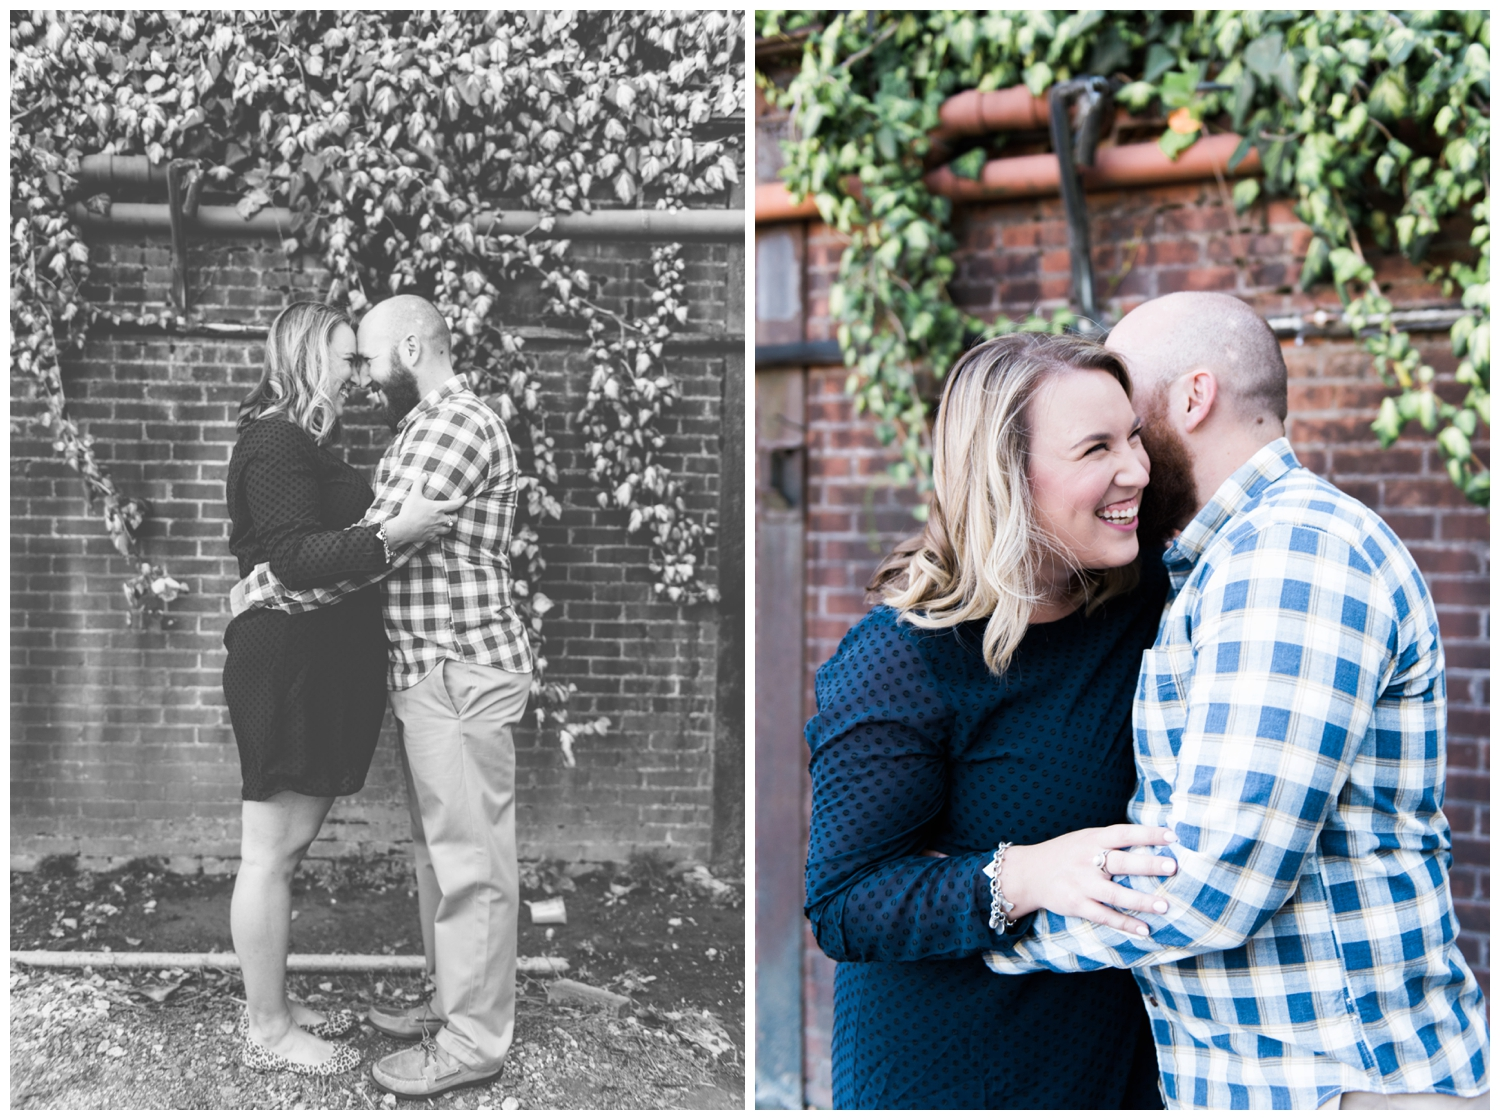 krog street market atlanta engagement session